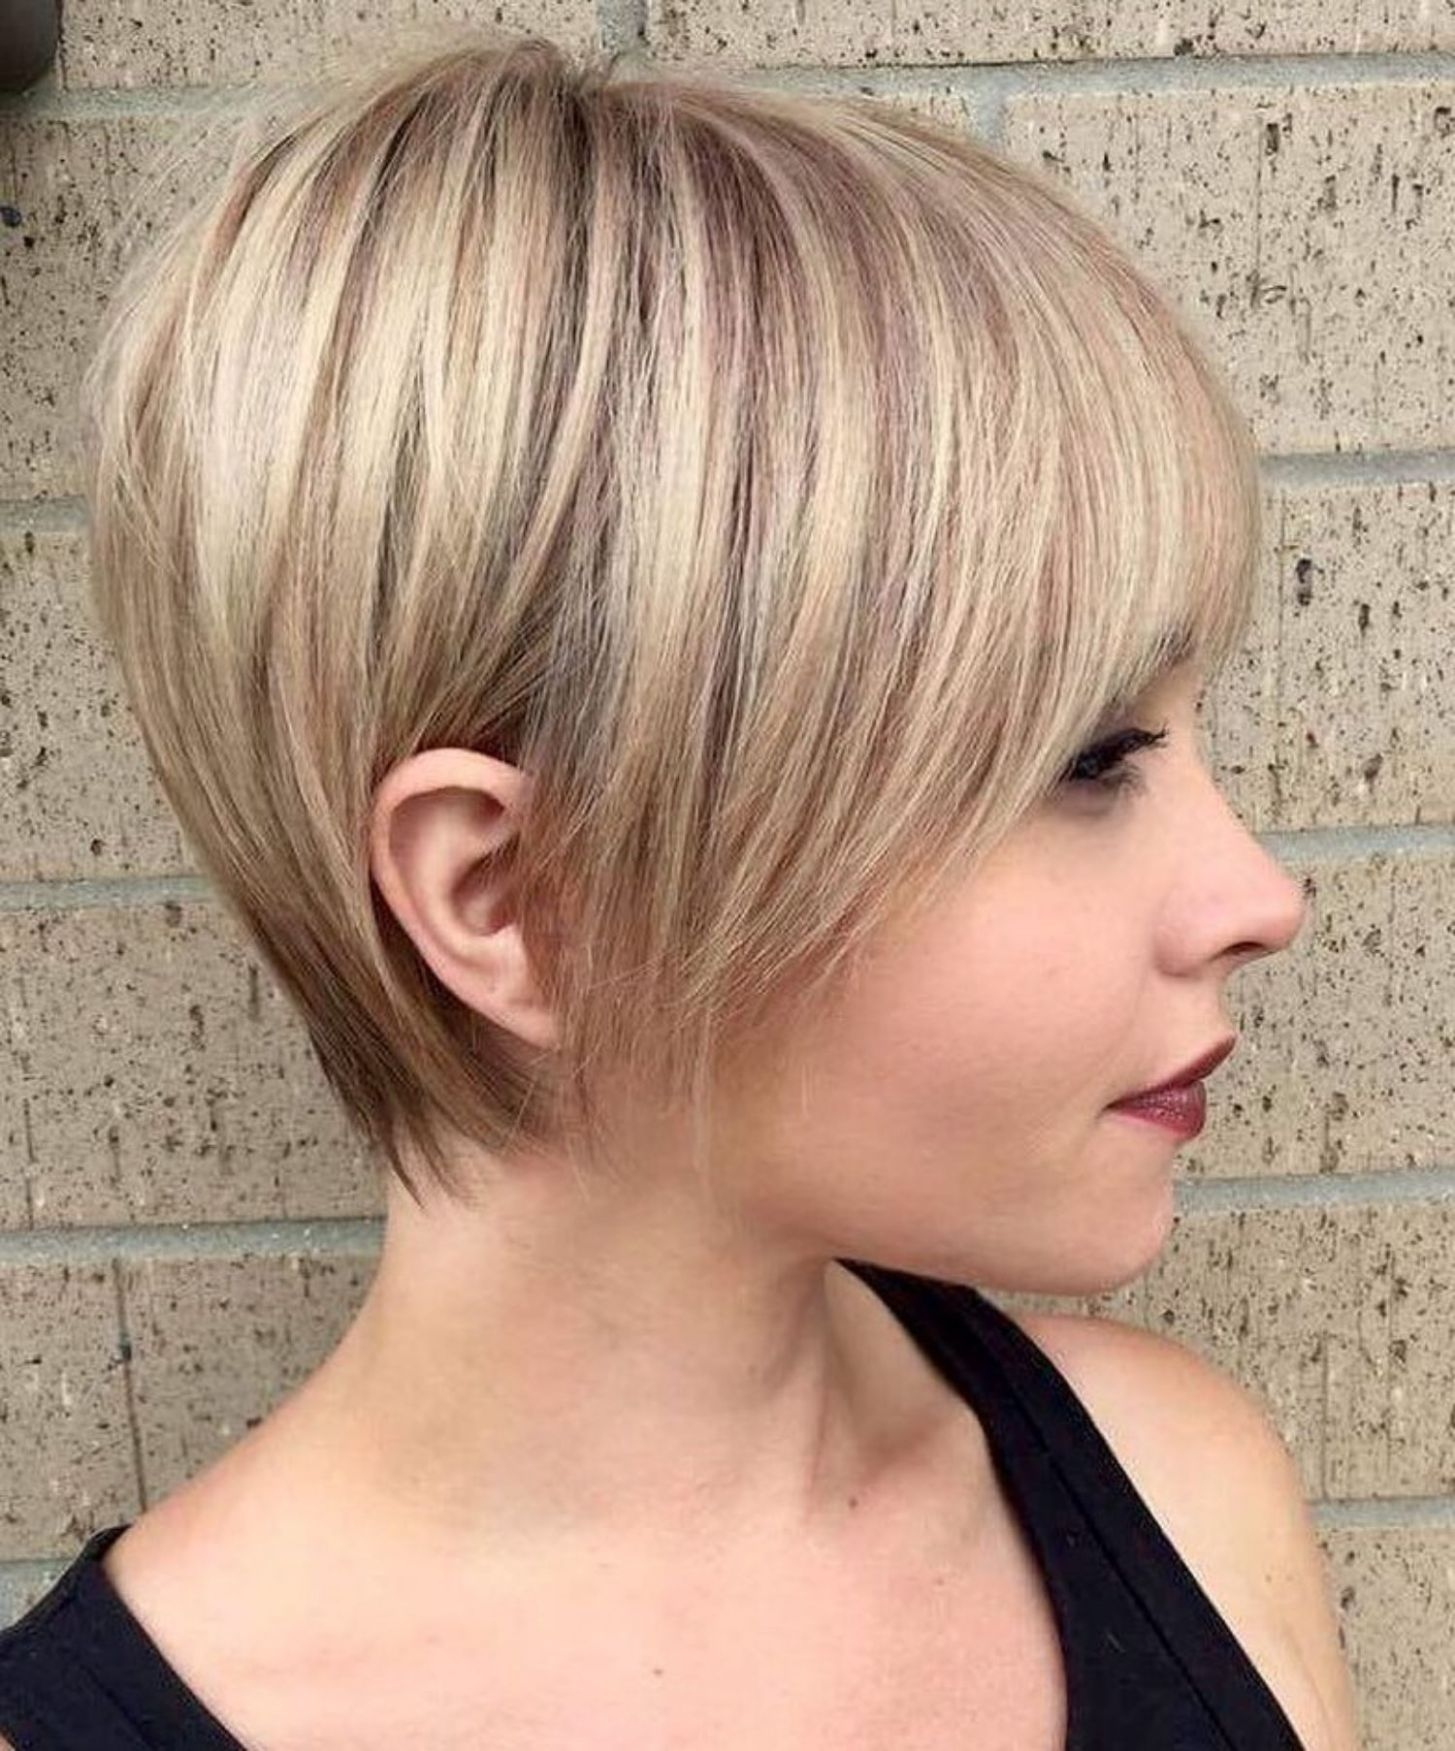 50 Super Cute Looks with Short Hairstyles for Round Faces | Short hair with  layers, Thick hair styles, Longer pixie haircut